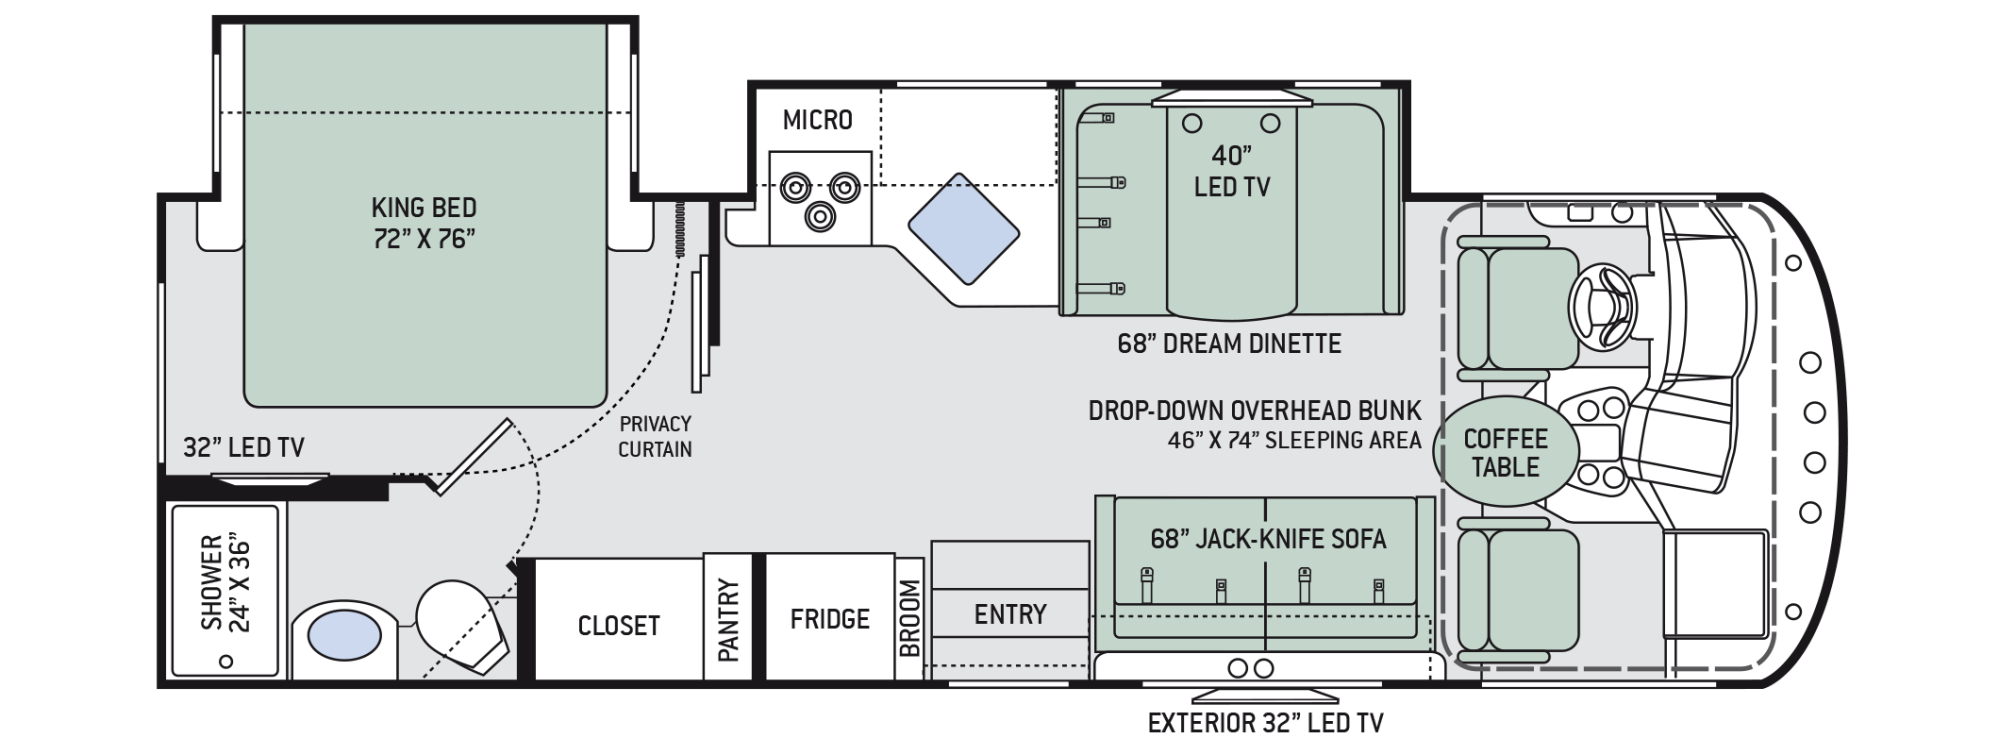 hight resolution of 2017 thor ace evo wiring diagrams wiring diagram thor motorhome